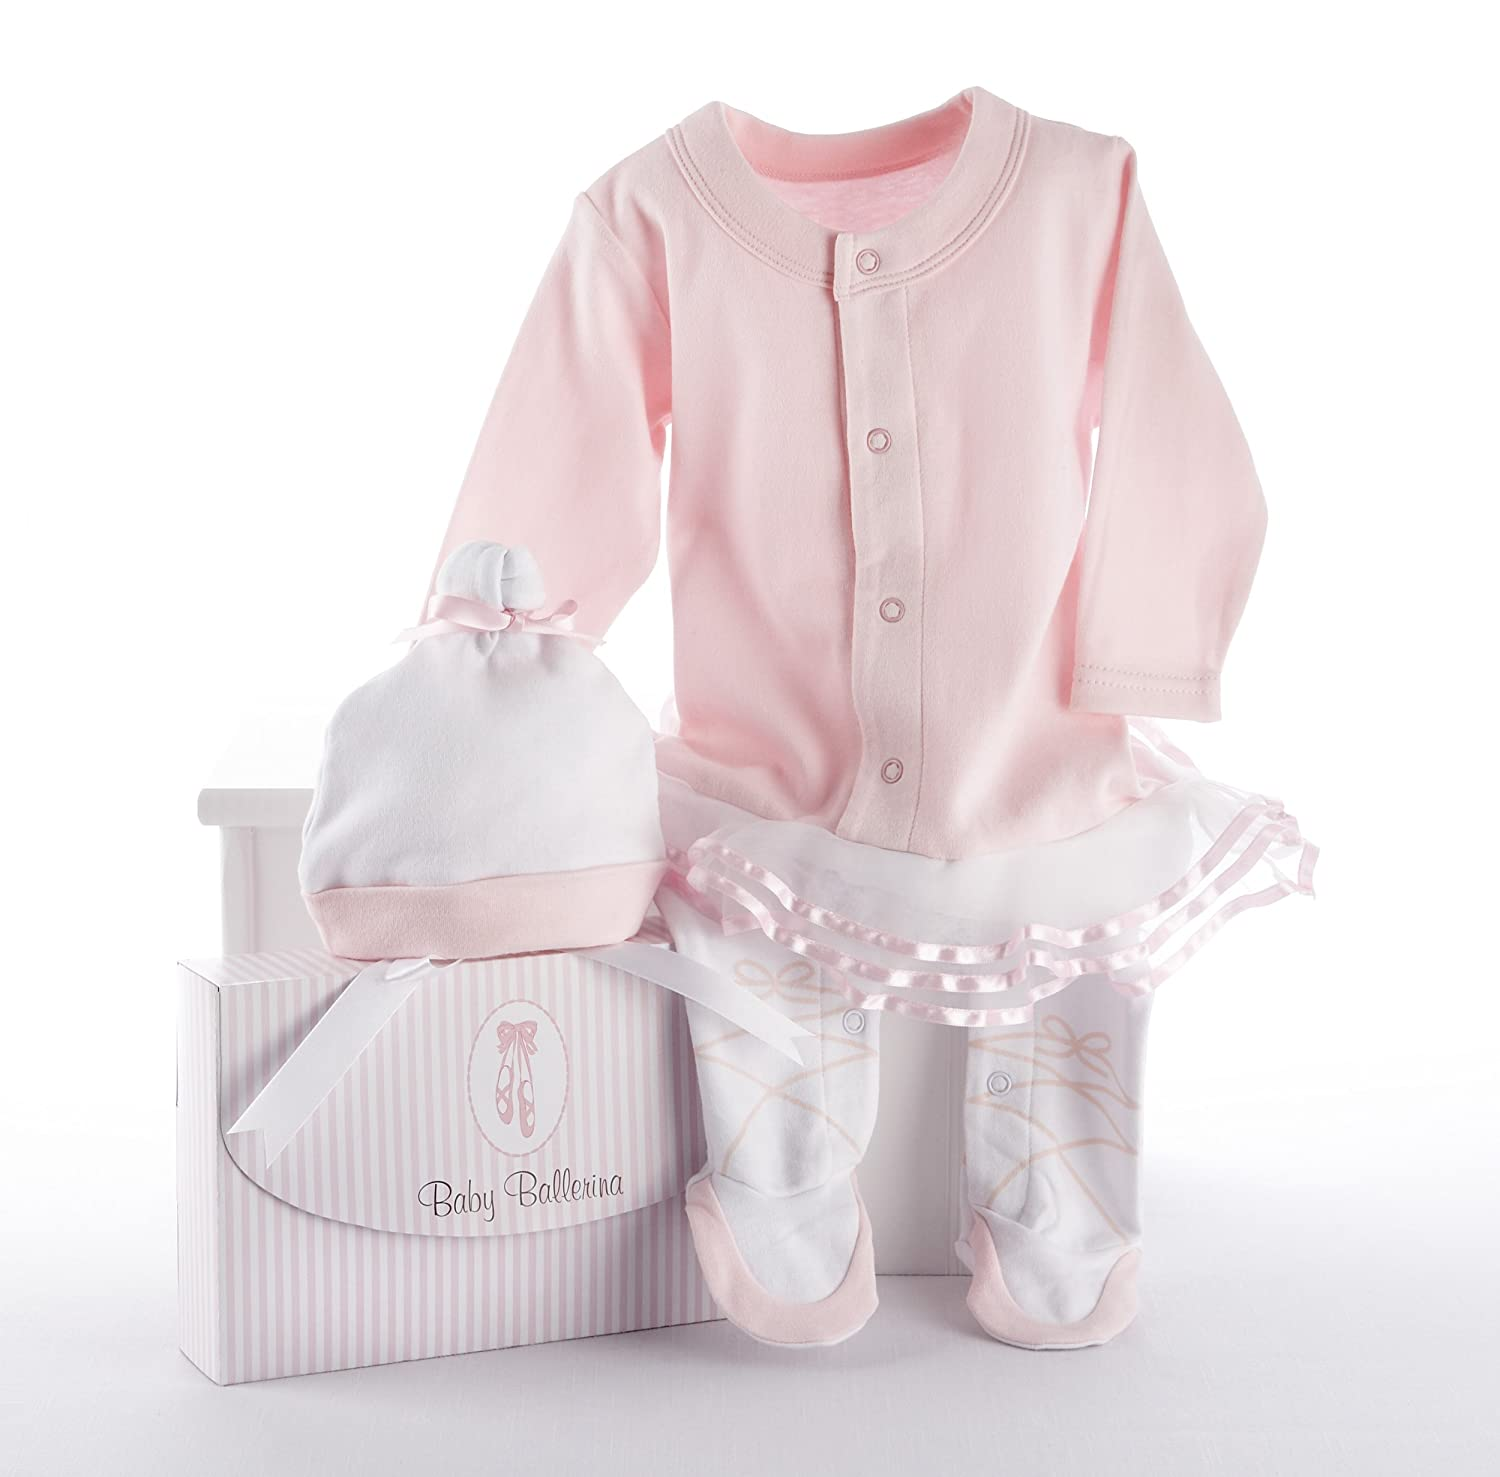 Baby Aspen Big Dreamzzz Baby Ballerina Layette Set with Gift Box, Pink, 0-6 Months BA16010PK